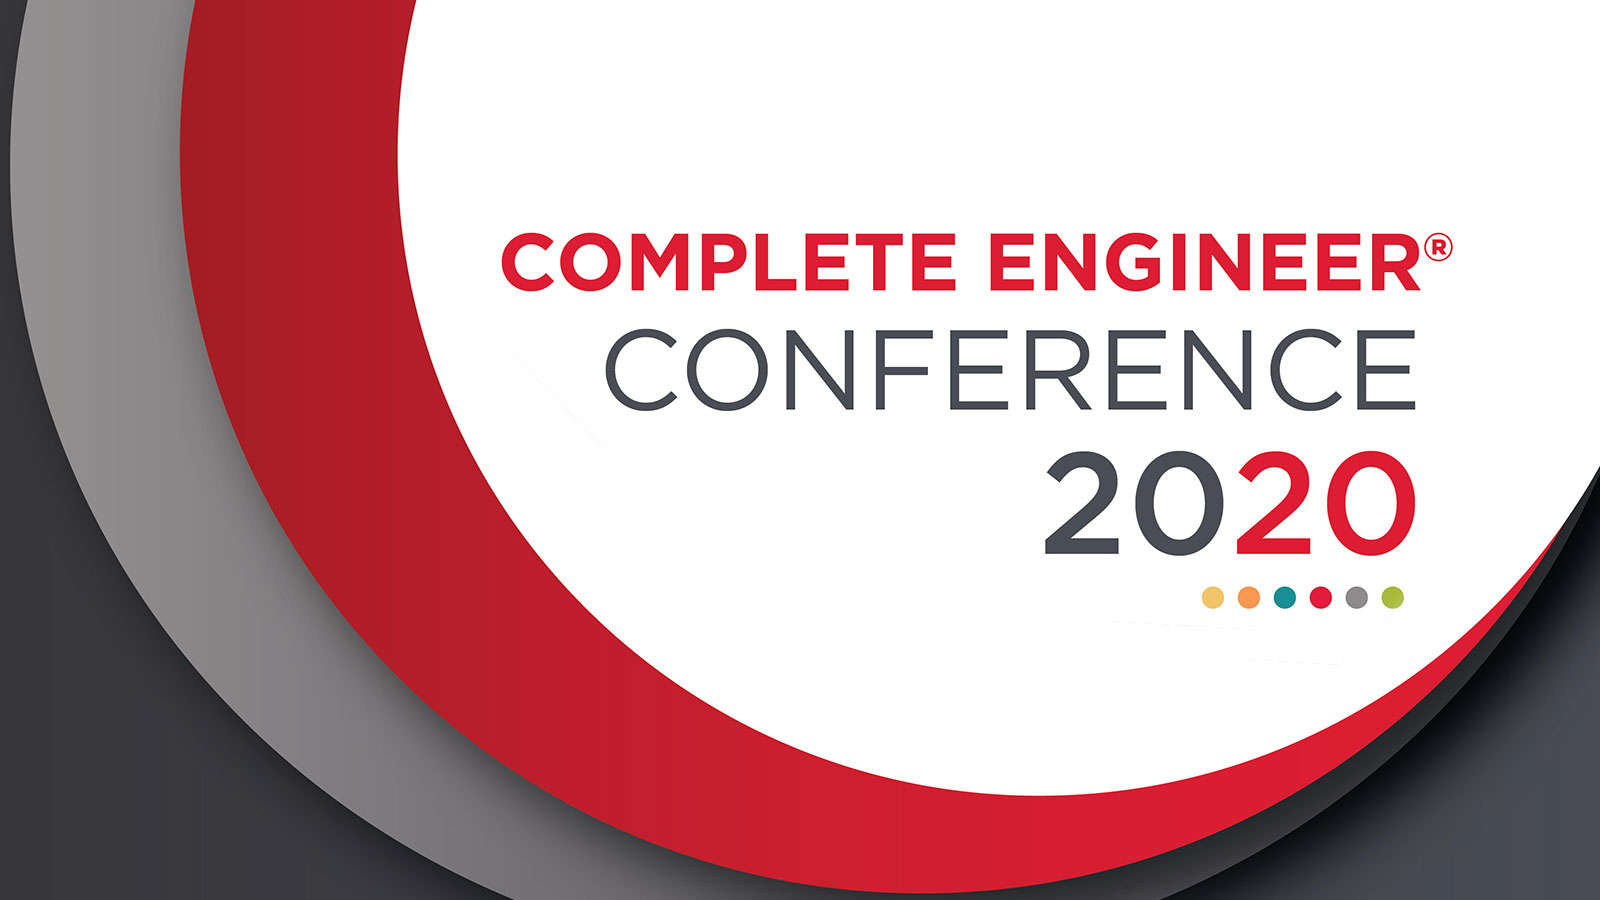 Complete Engineer Conference